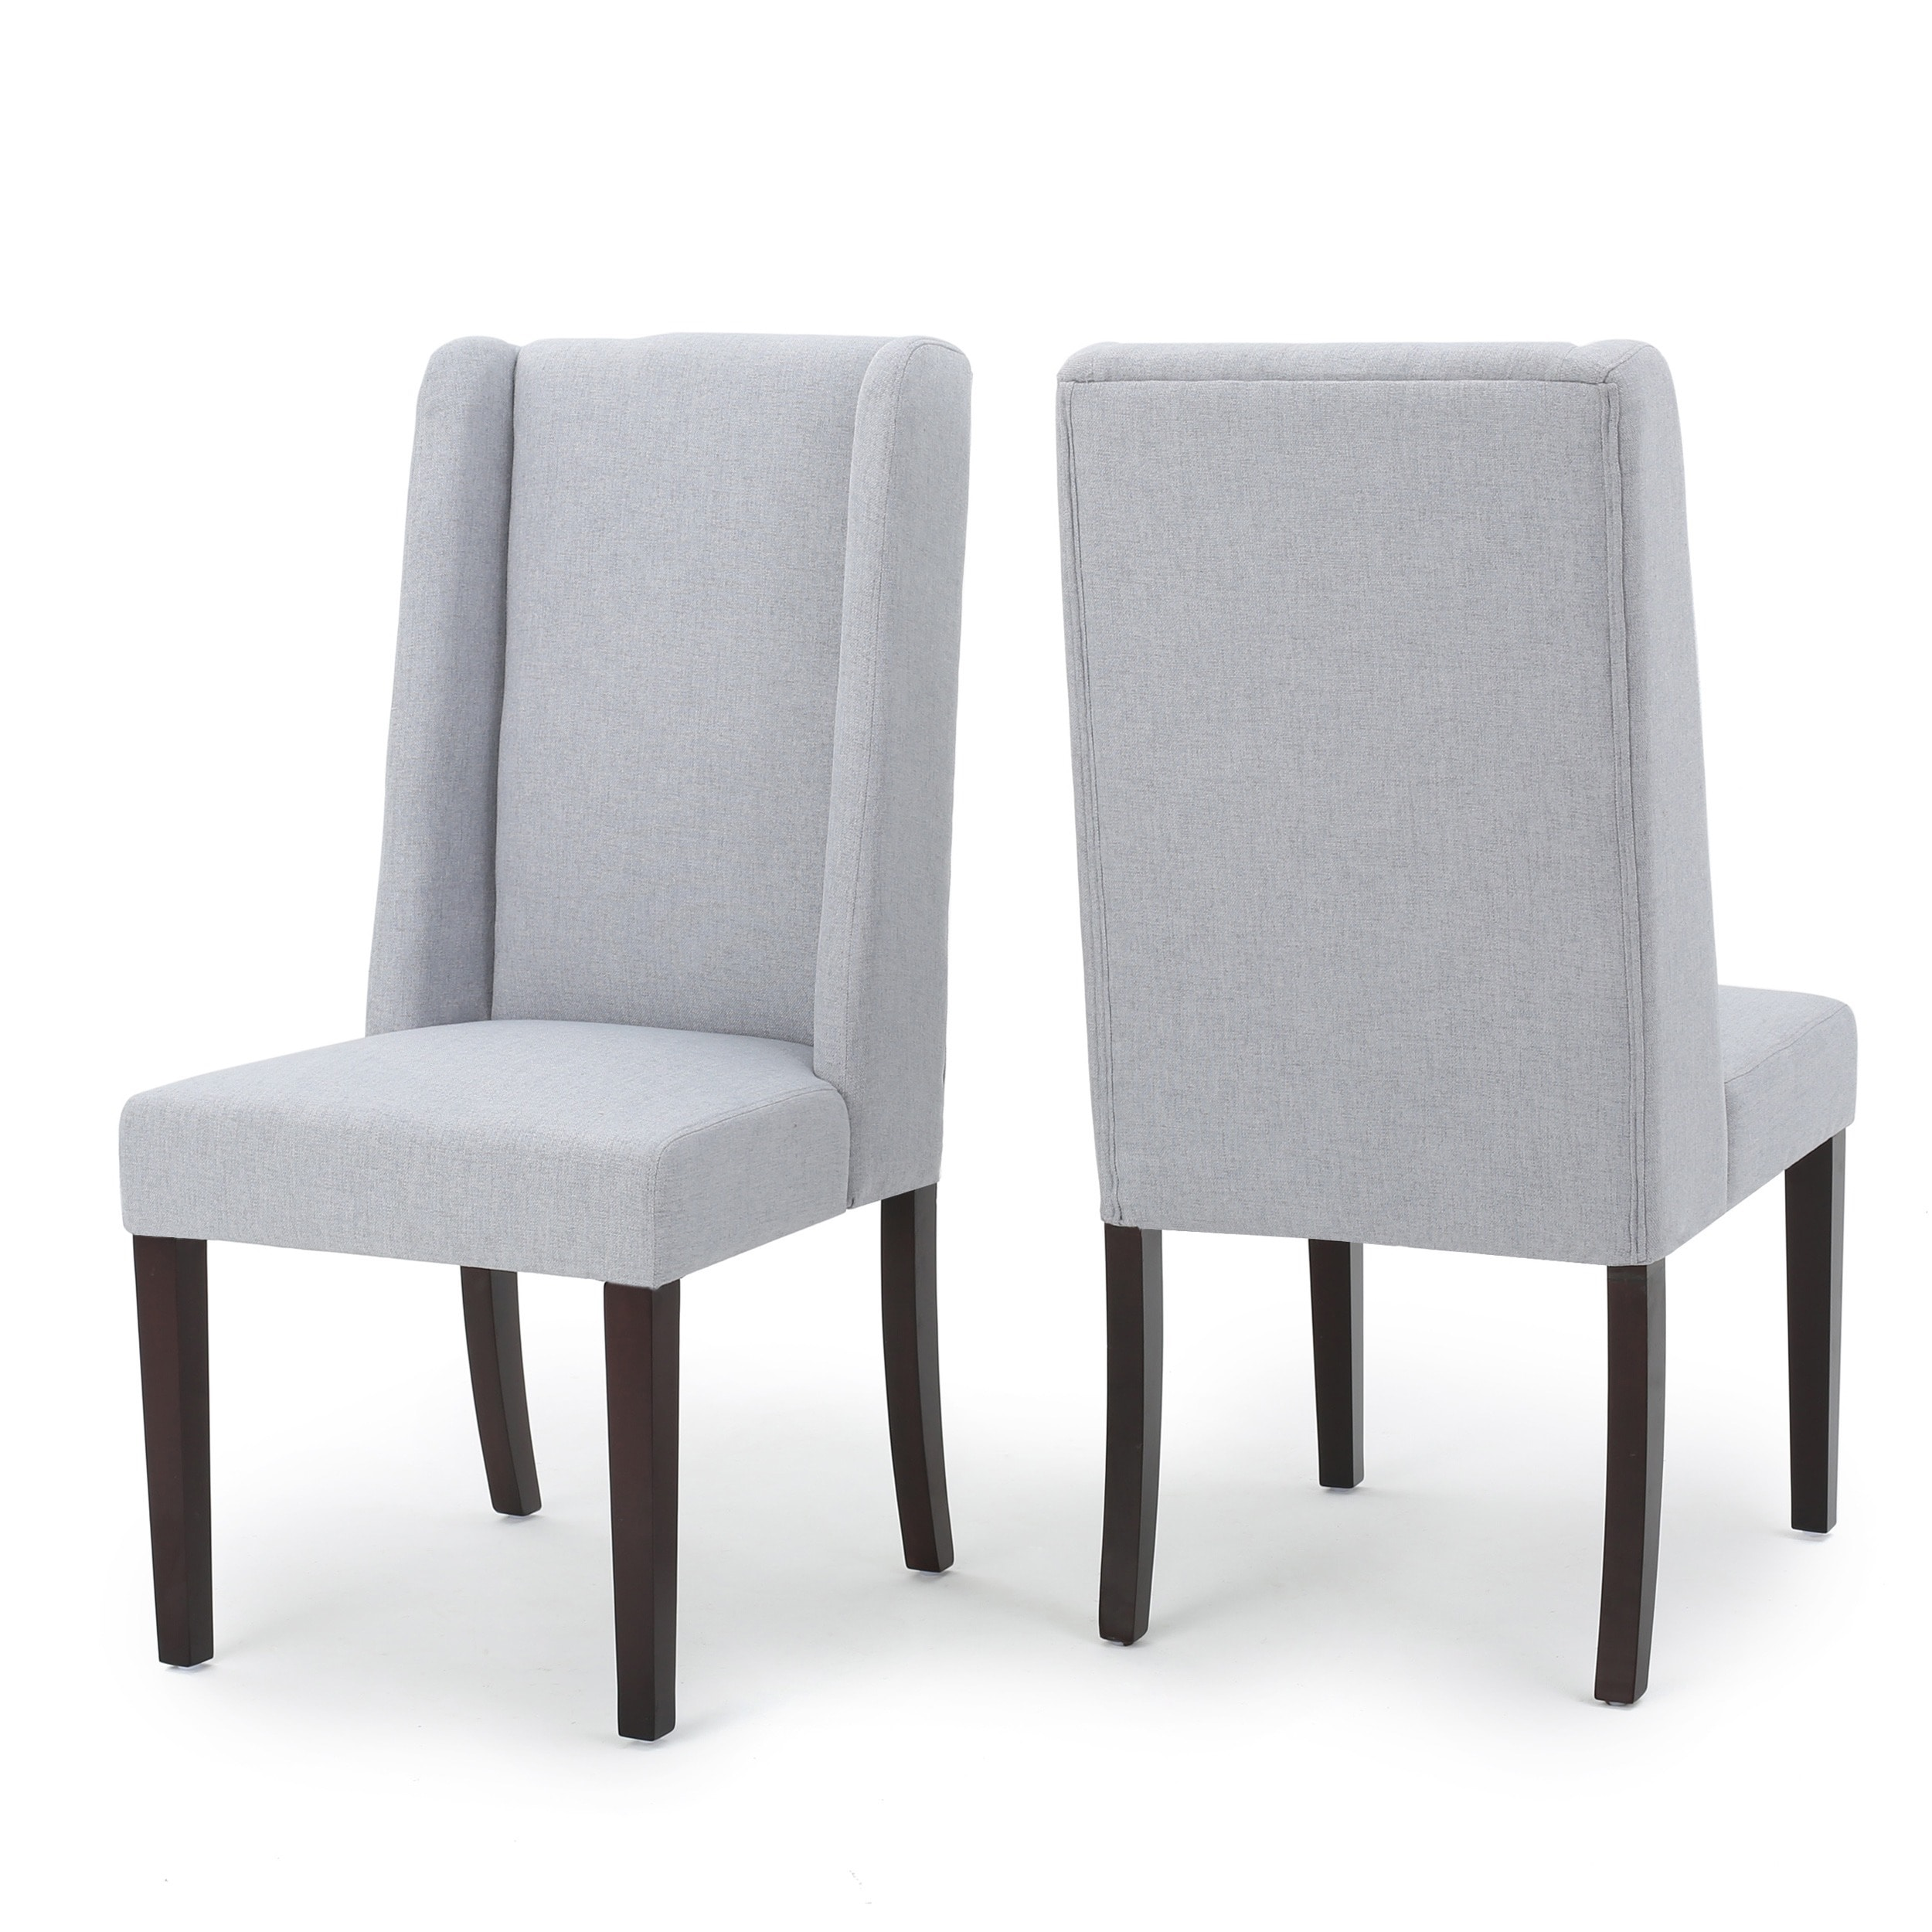 Rory Wing Back Fabric Dining Chair (Set Of 2) By Christopher Knight Home    Free Shipping Today   Overstock.com   20744501